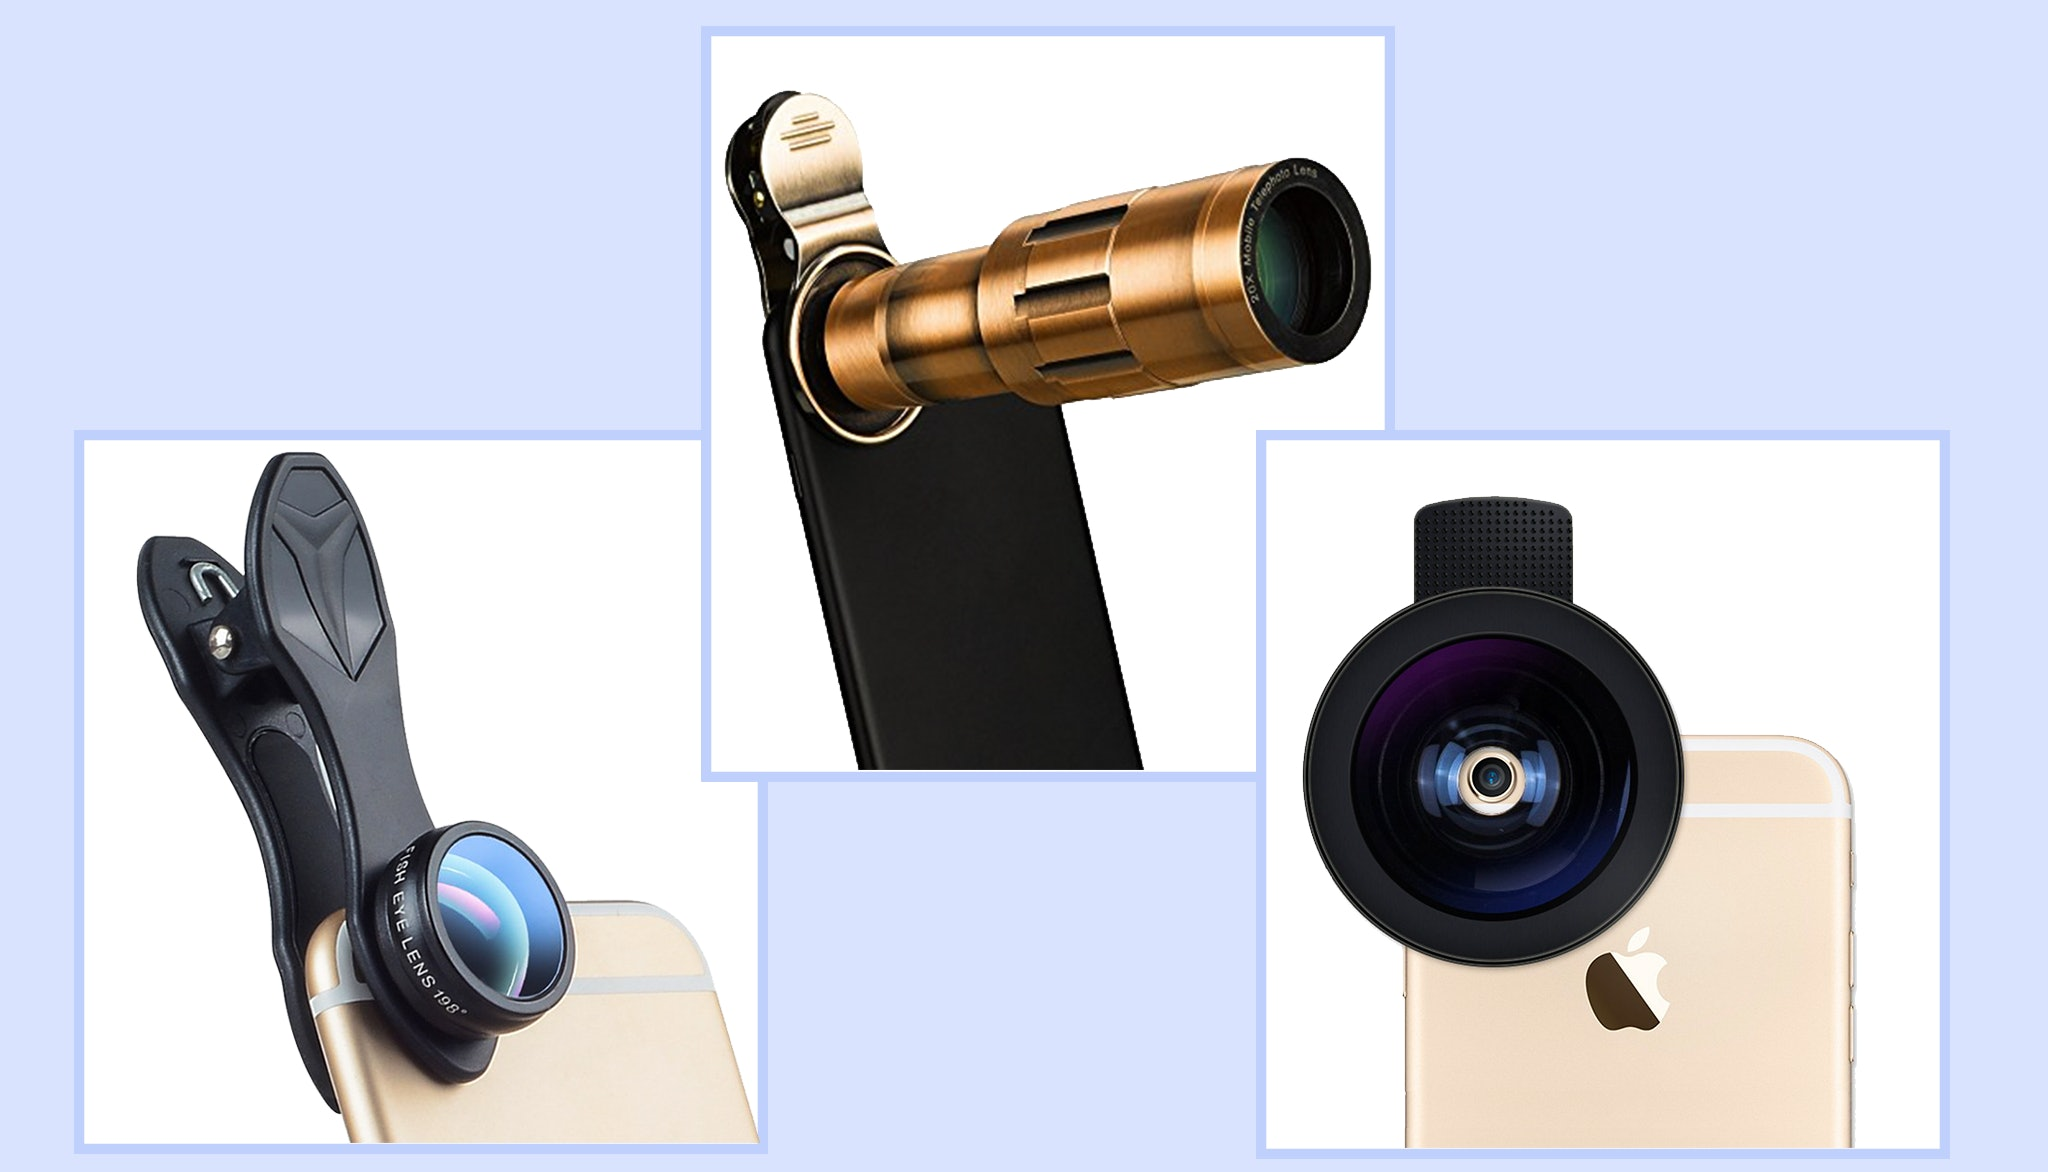 Zoom phone telephoto camera lens telescope bundled with